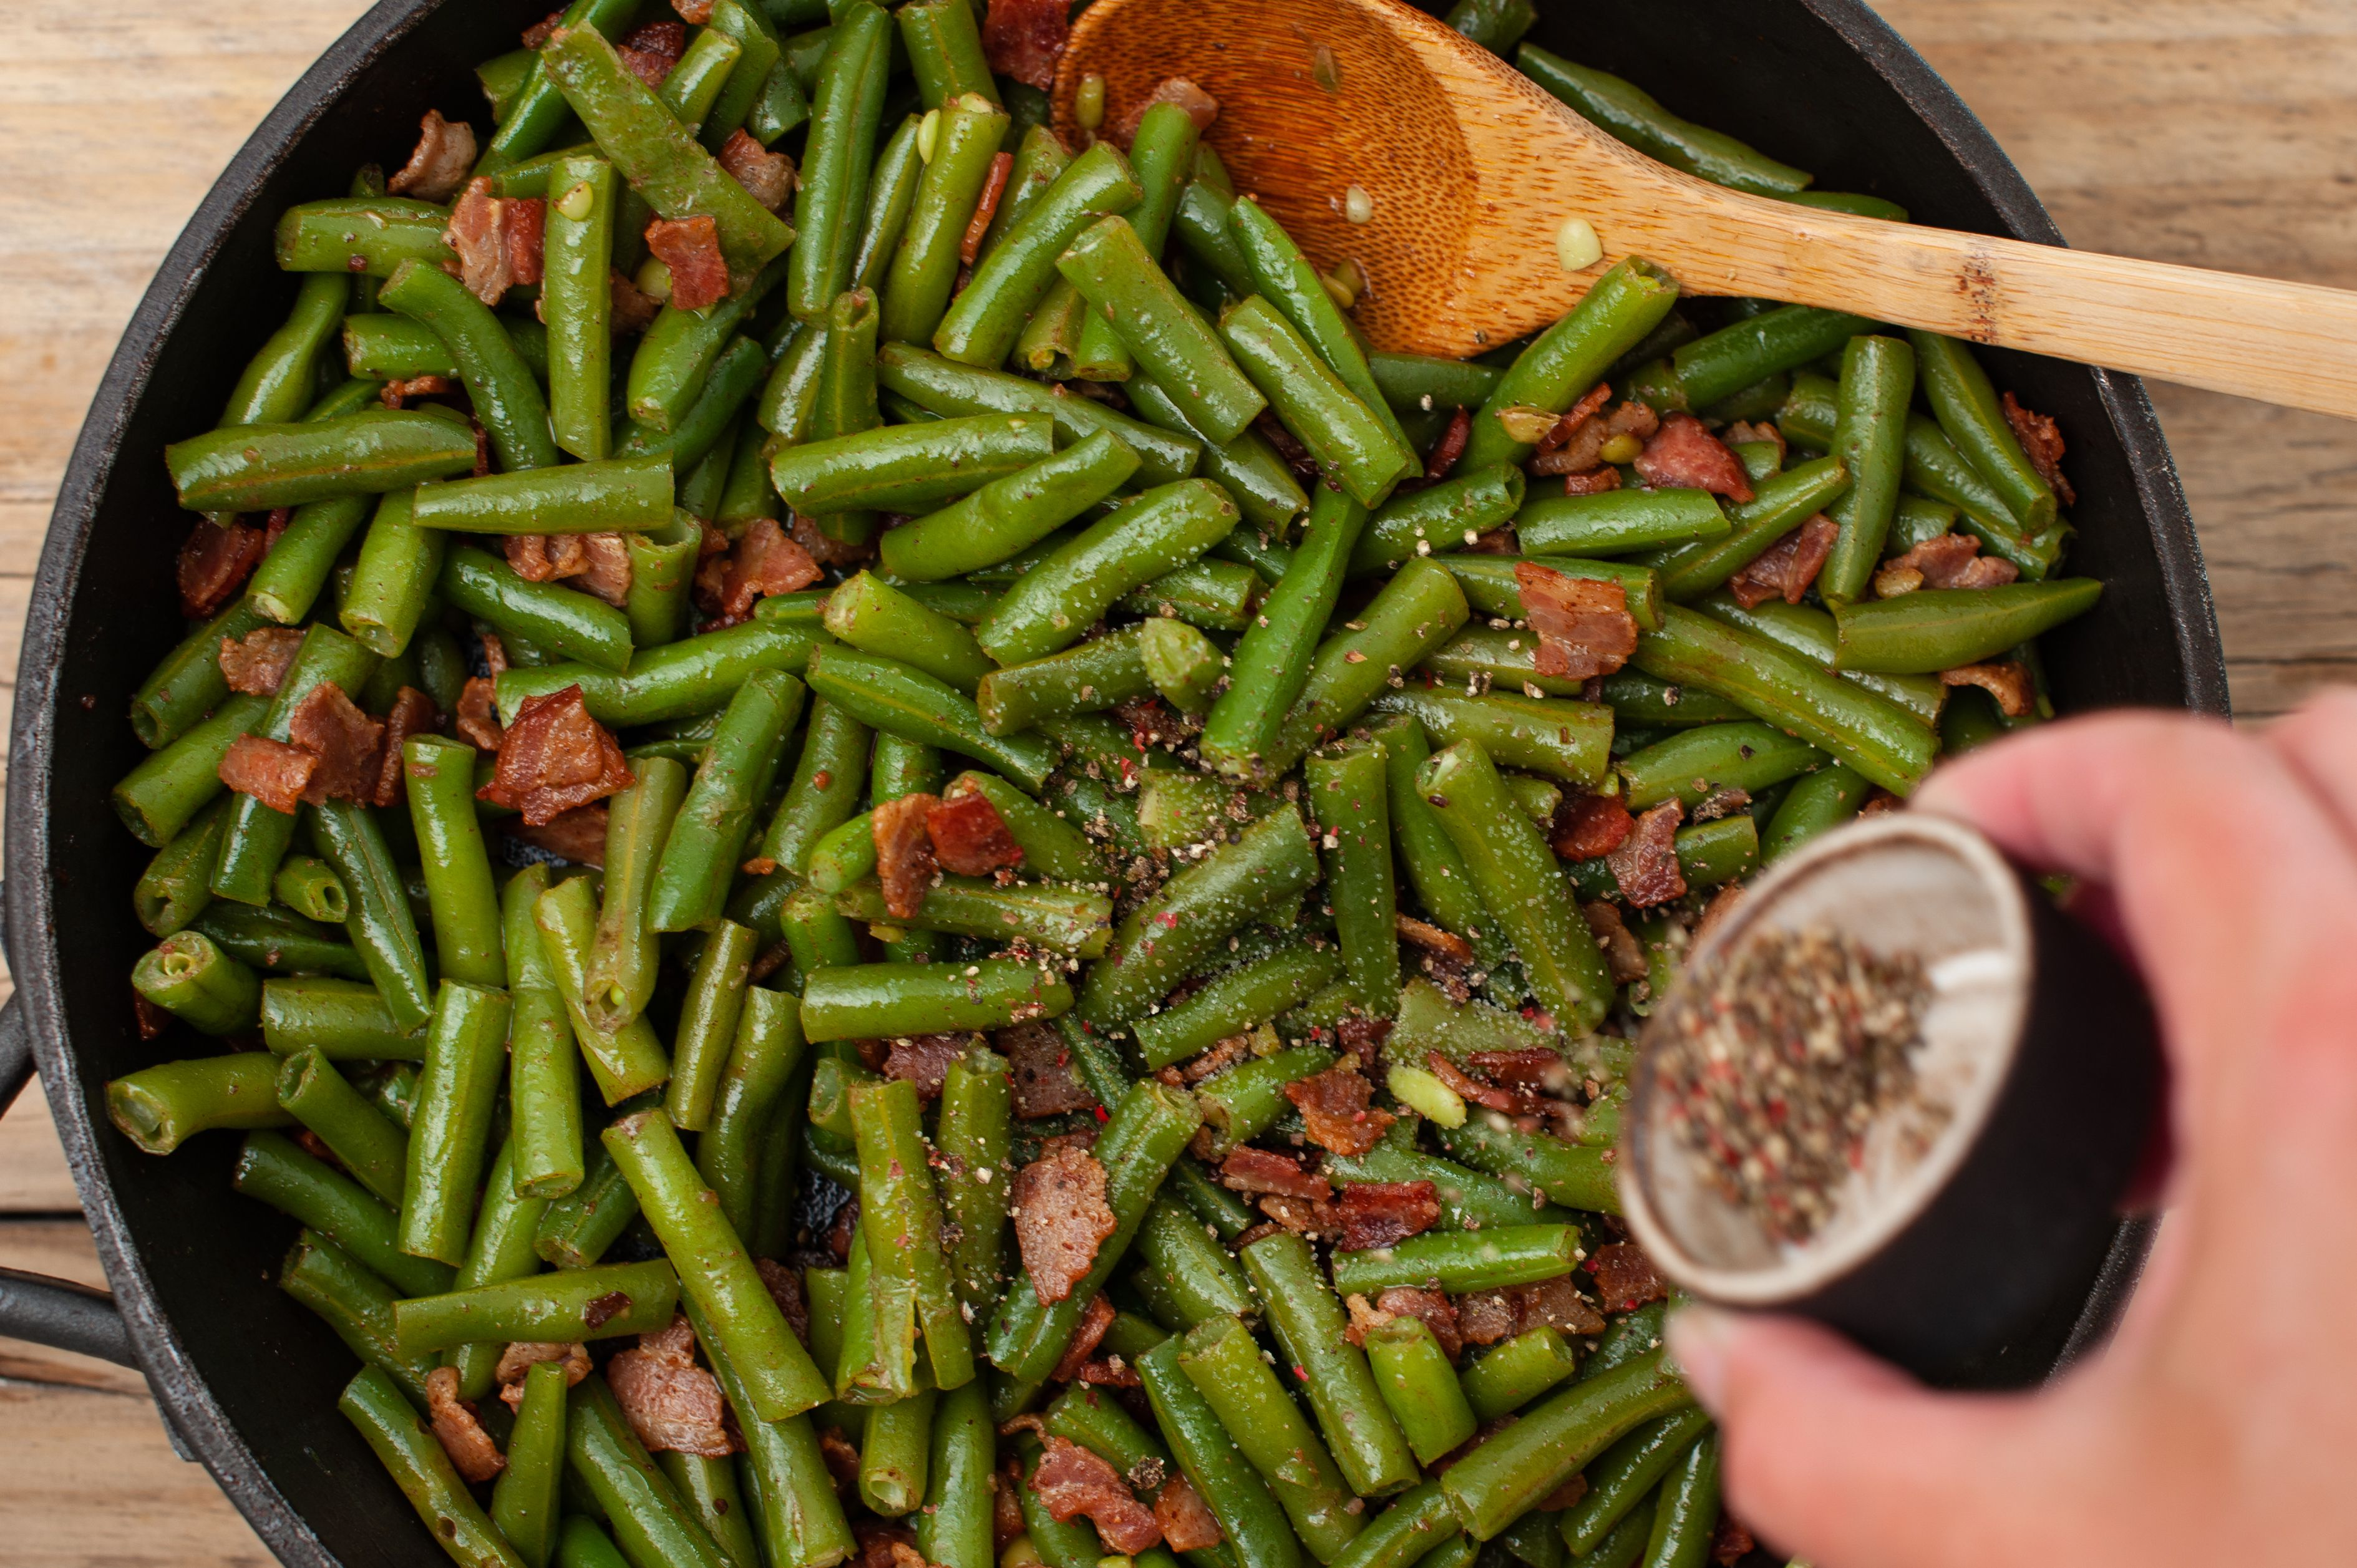 Adding seasoning to the bacon and green beans